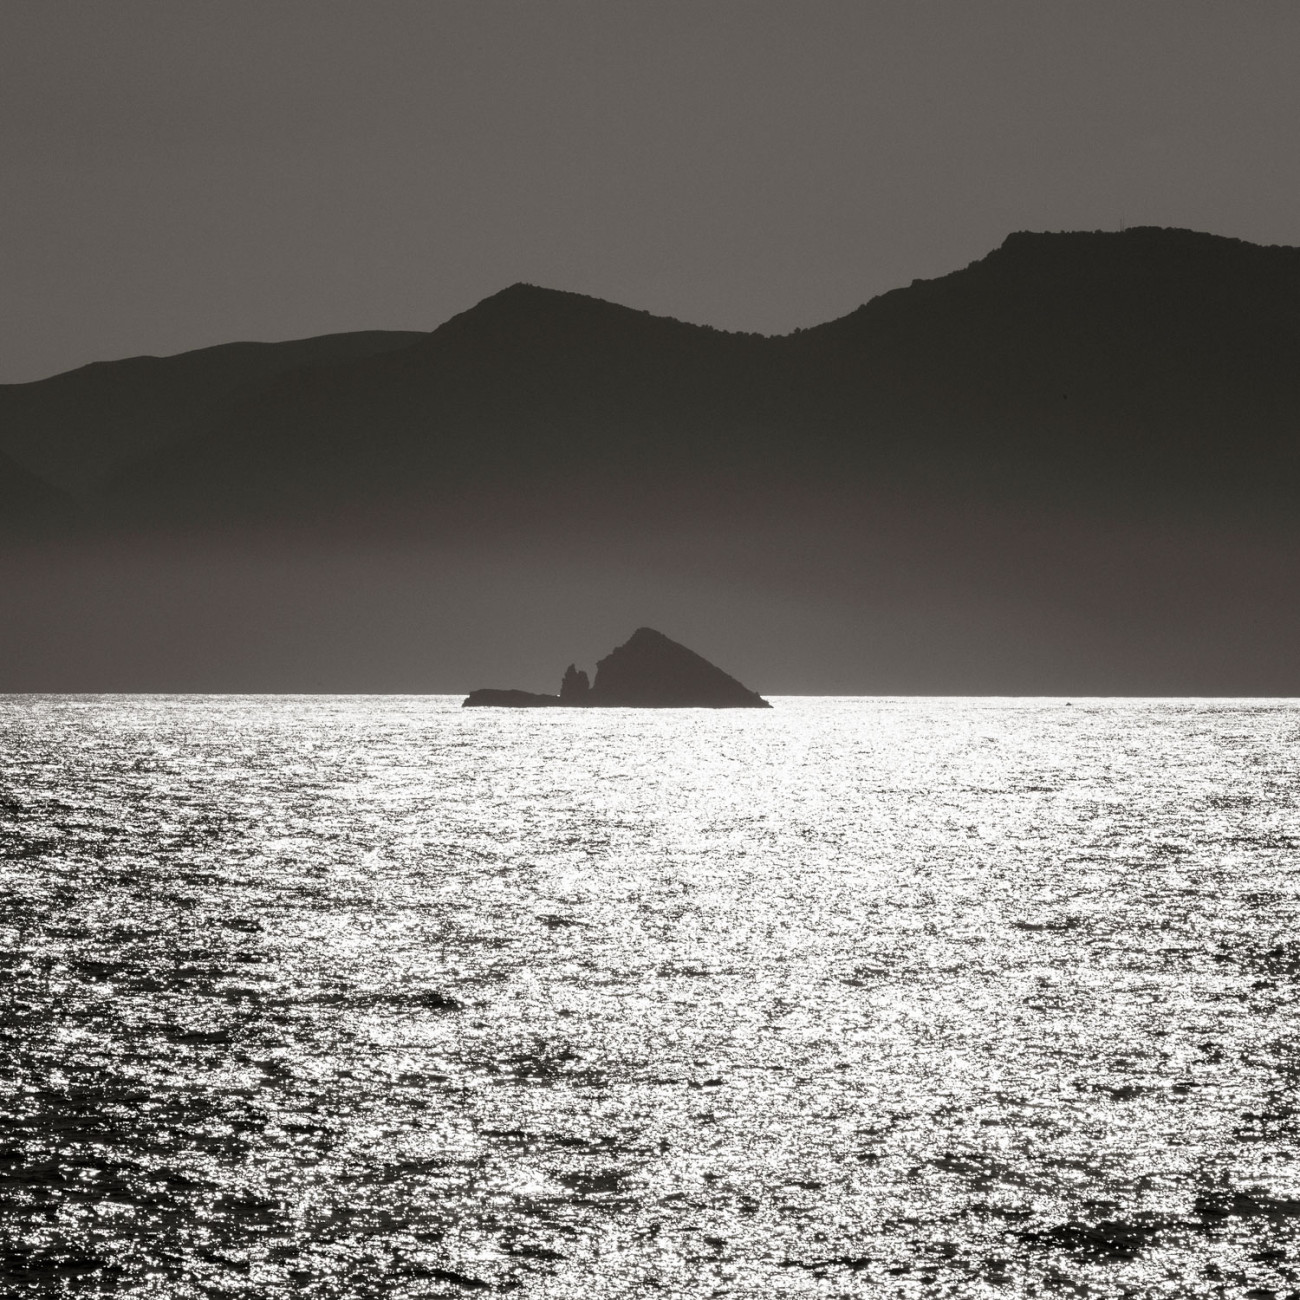 Triangle rock and Mediterranean coast of Spain, 2014